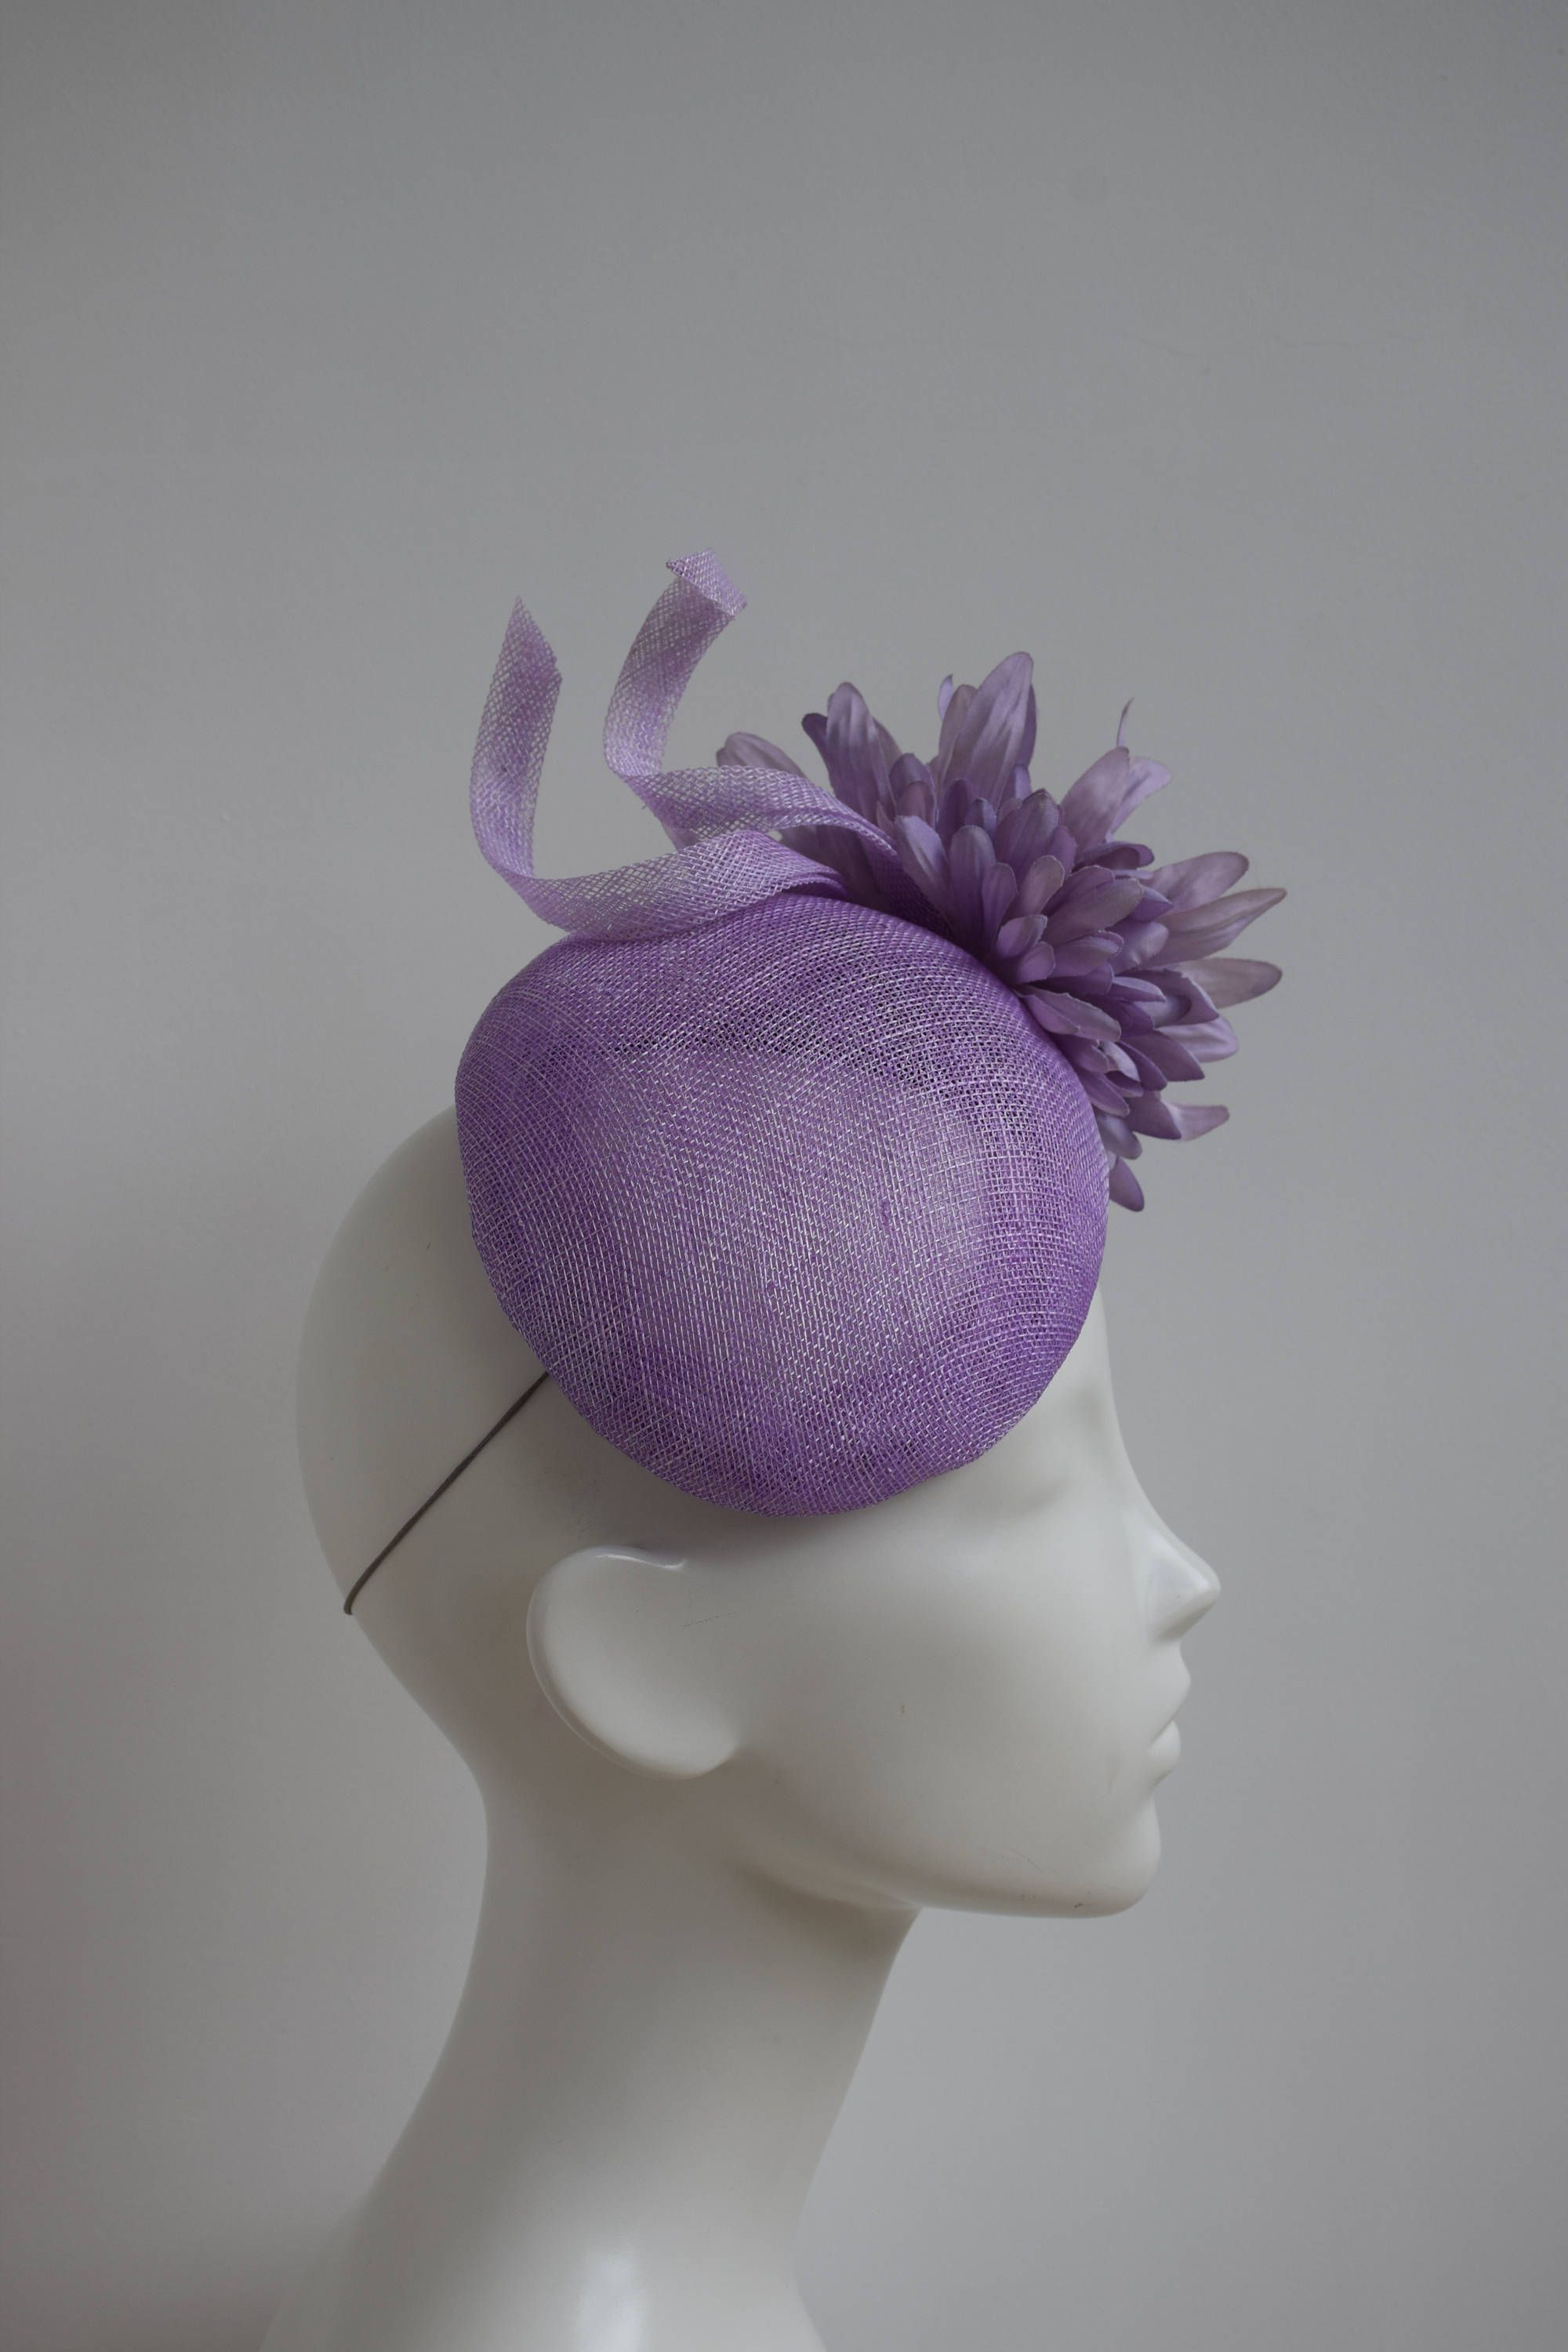 Lilac Fascinator - Kate Hat - Lavender Cocktail Hat - Lilac Wedding Hat -  Pastel Pale Purple Hat - Mother of Bride Hat - Race Derby Day Hat by ... 703f158f88a